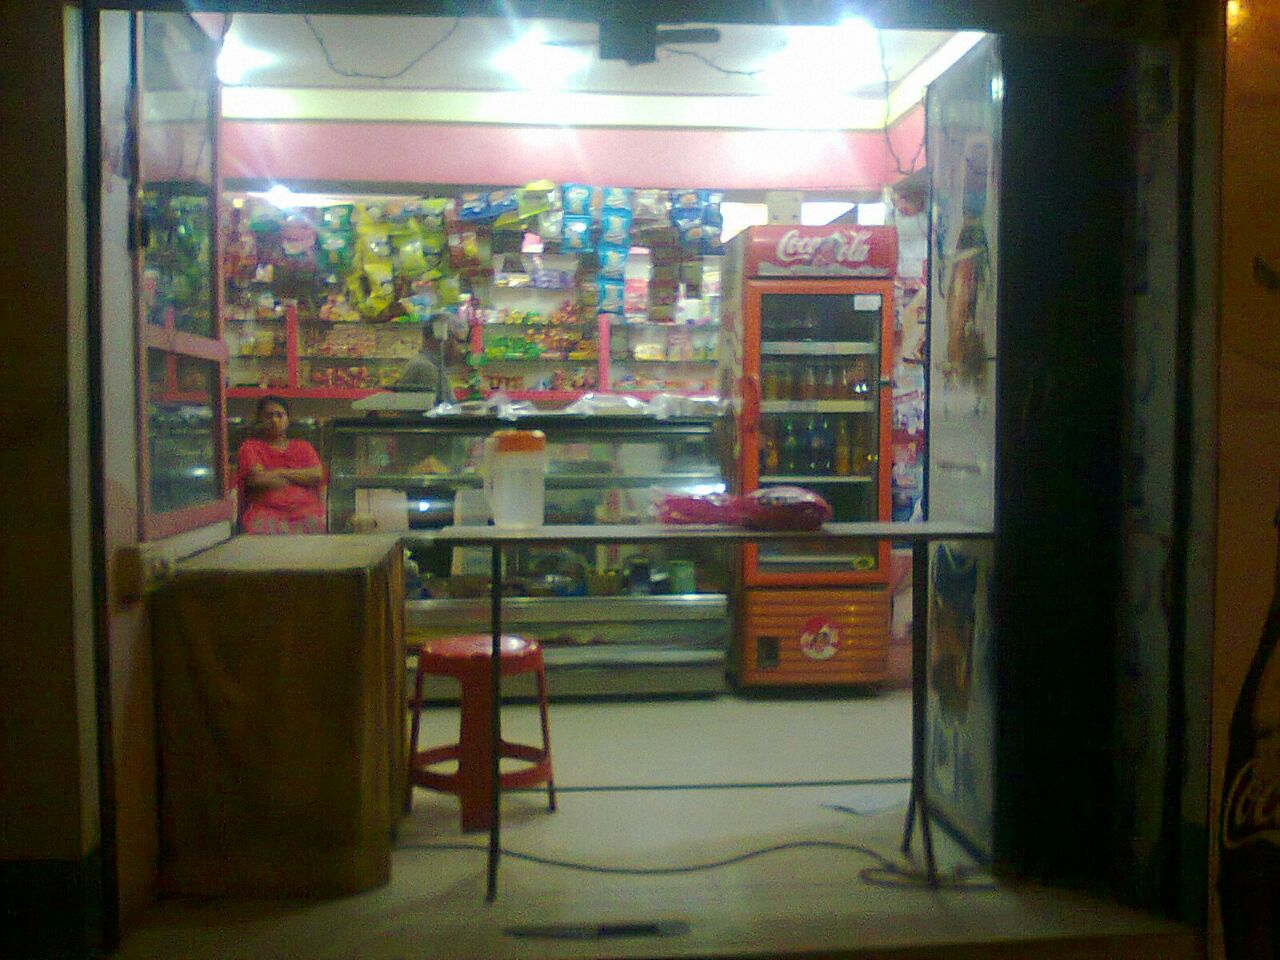 Bakery shop for sale in Mysore